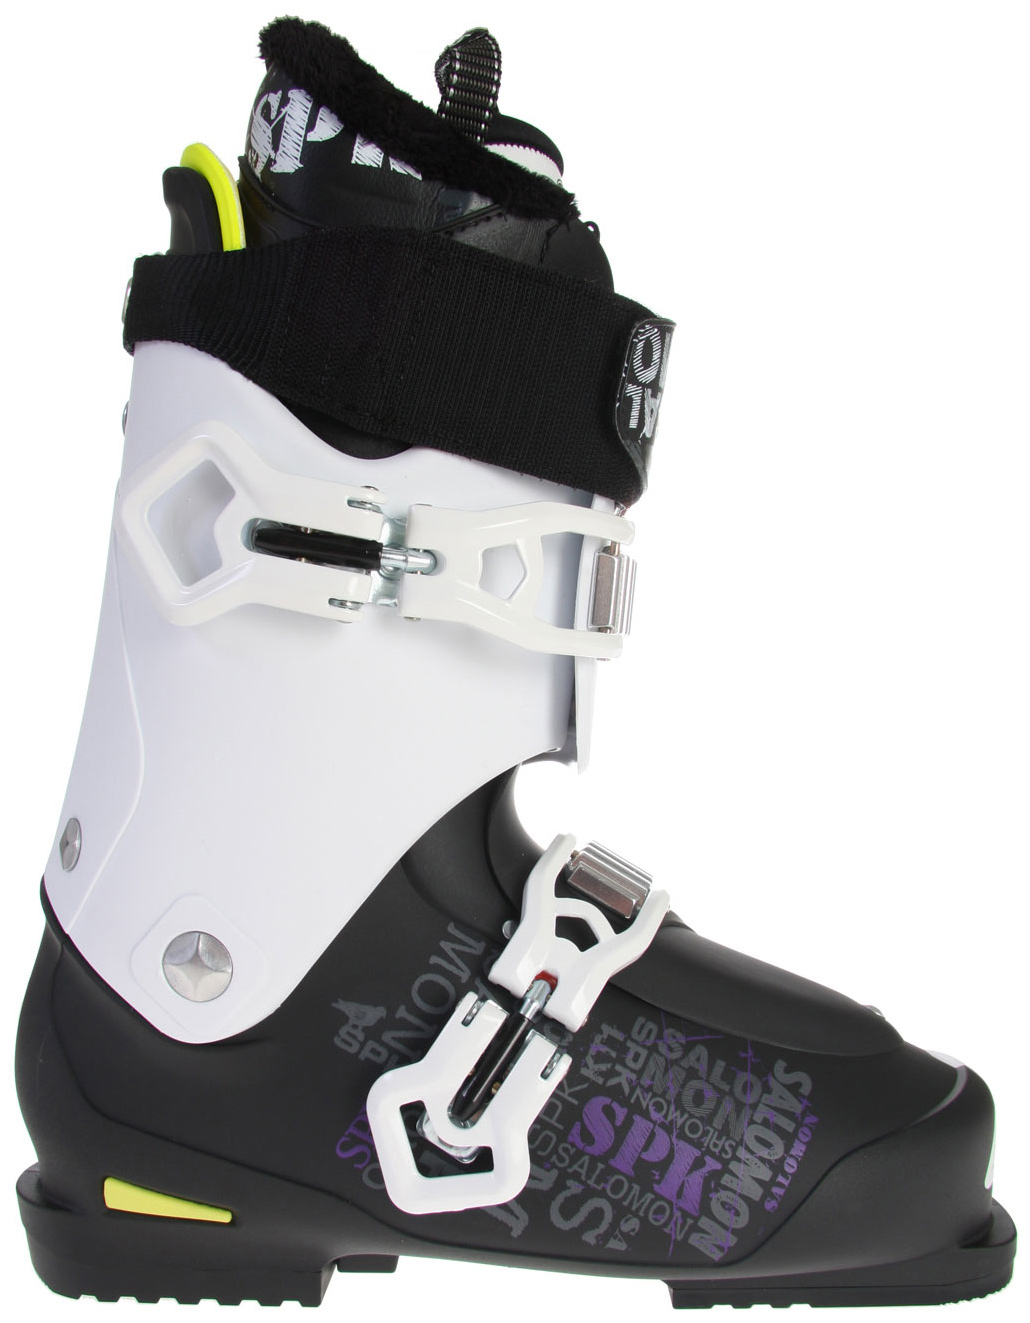 Ski Kaos ski boots, a progressive model from Salomon, are ideal for a day at the terrain park.  The boots are light-weight thanks the Freestyle Spaceframe construction and a two-buckle design. Also boasting a thermo-moldable liner around the ankle and tongue of the boot, Kaos boots act like they are custom fit. Add some faux fur to the liner, and a little extra space in the toe box and these boots are a logical choice for park and pipe riders. With ultimate comfort and measures to help improve balance these boots make sense for both beginners and experts.Key Features of the Salomon Kaos Ski Boots:  My Custom Fit Sport  Quicklace  Adjustable spoiler  Extra padded spoiler  Shin pad  SCS with Rubber toe insert  Flex: 100  Last: 104mm  Strap: 55 - $397.95